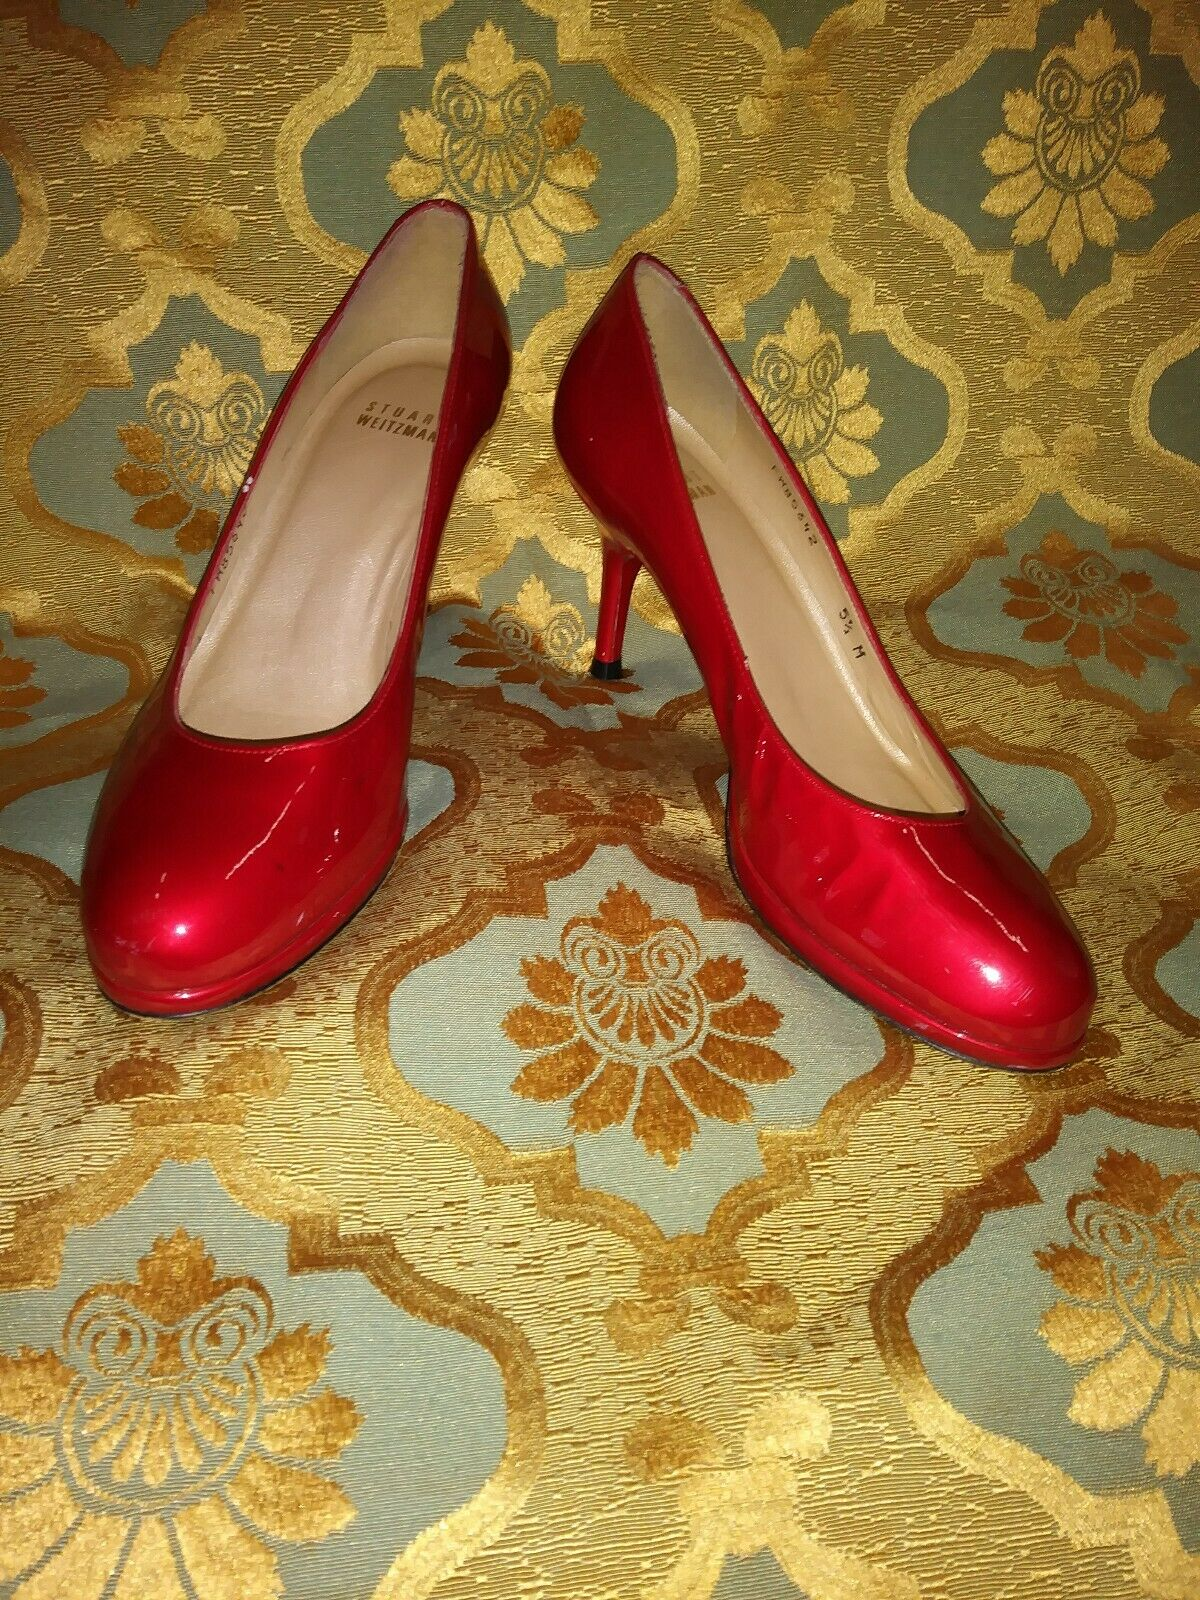 Stuart Weitzman 5.5 Red Patent Leather Round Toe Pumps Heels Platform Ruby Flame